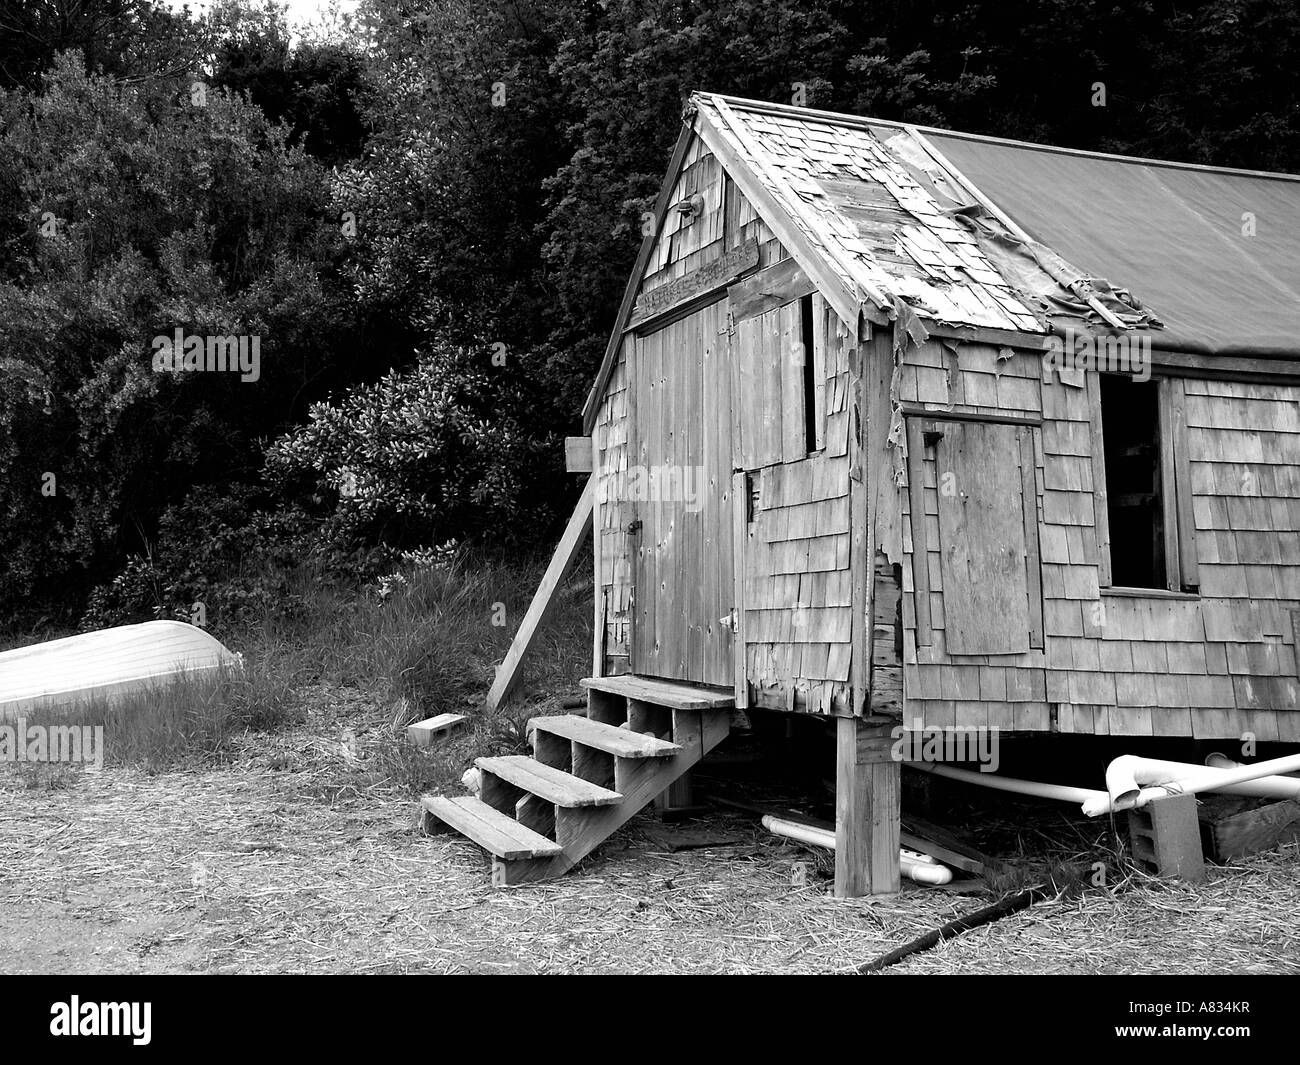 An abandoned-looking building on the shore of a pond on Cape Cod; full description below. - Stock Image